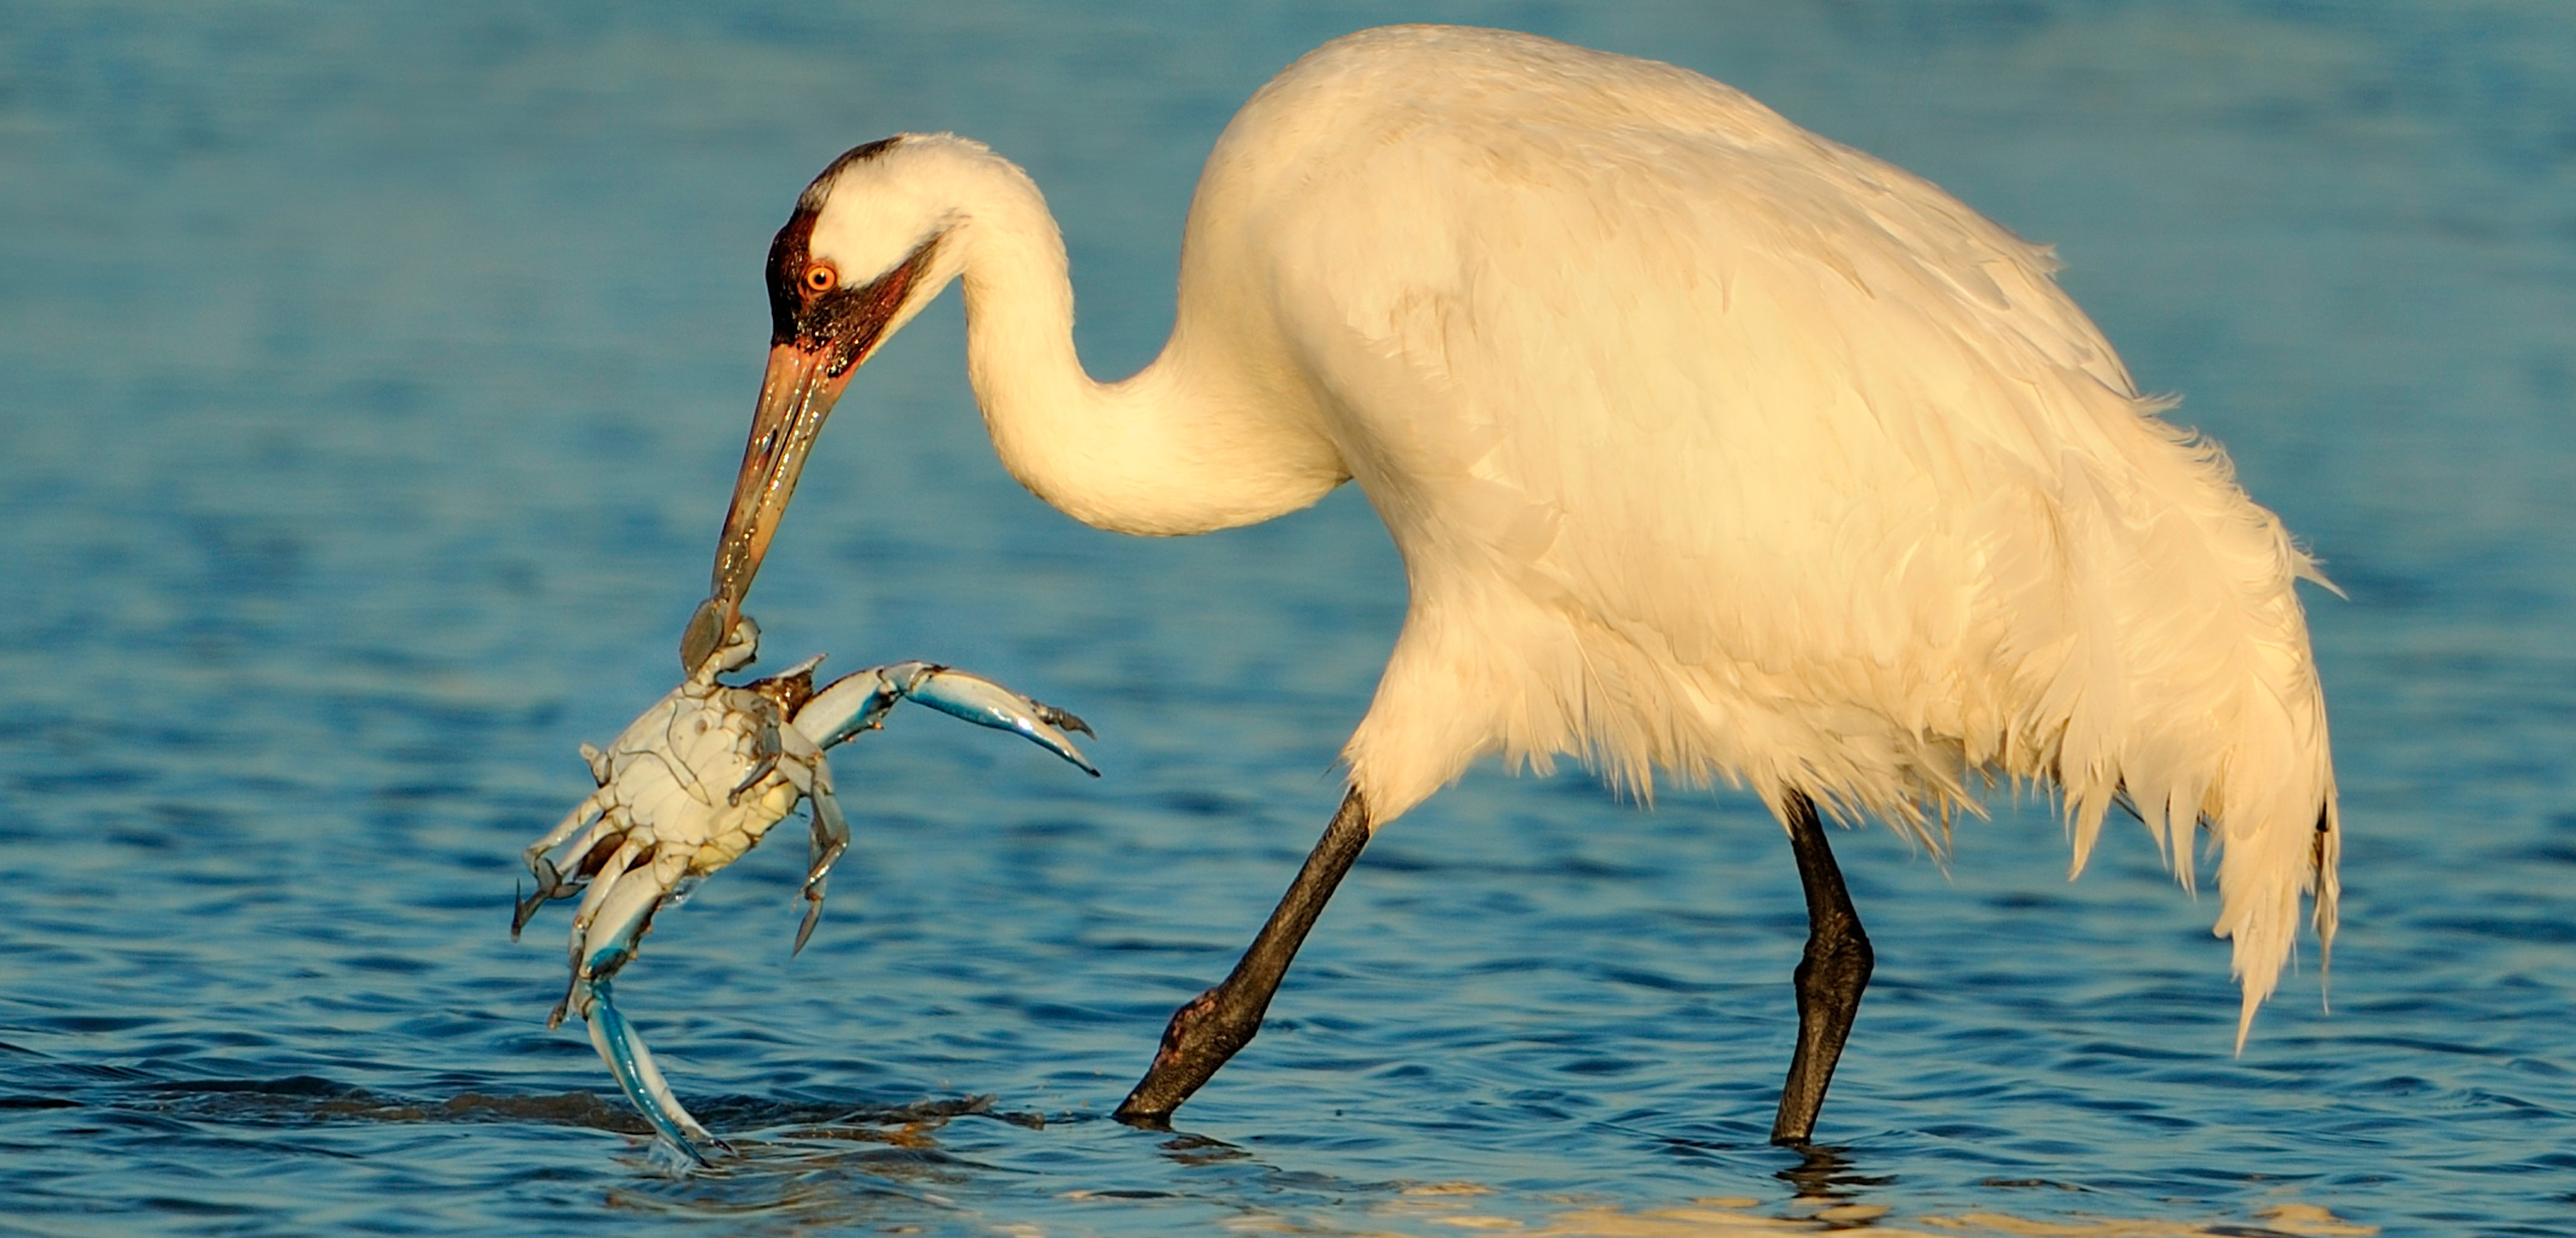 A member of the only remaining wild flock of whooping cranes plucks a crab from the shallows off Texas. Photo by Alan Murphy/BIA/Minden Pictures/Corbis